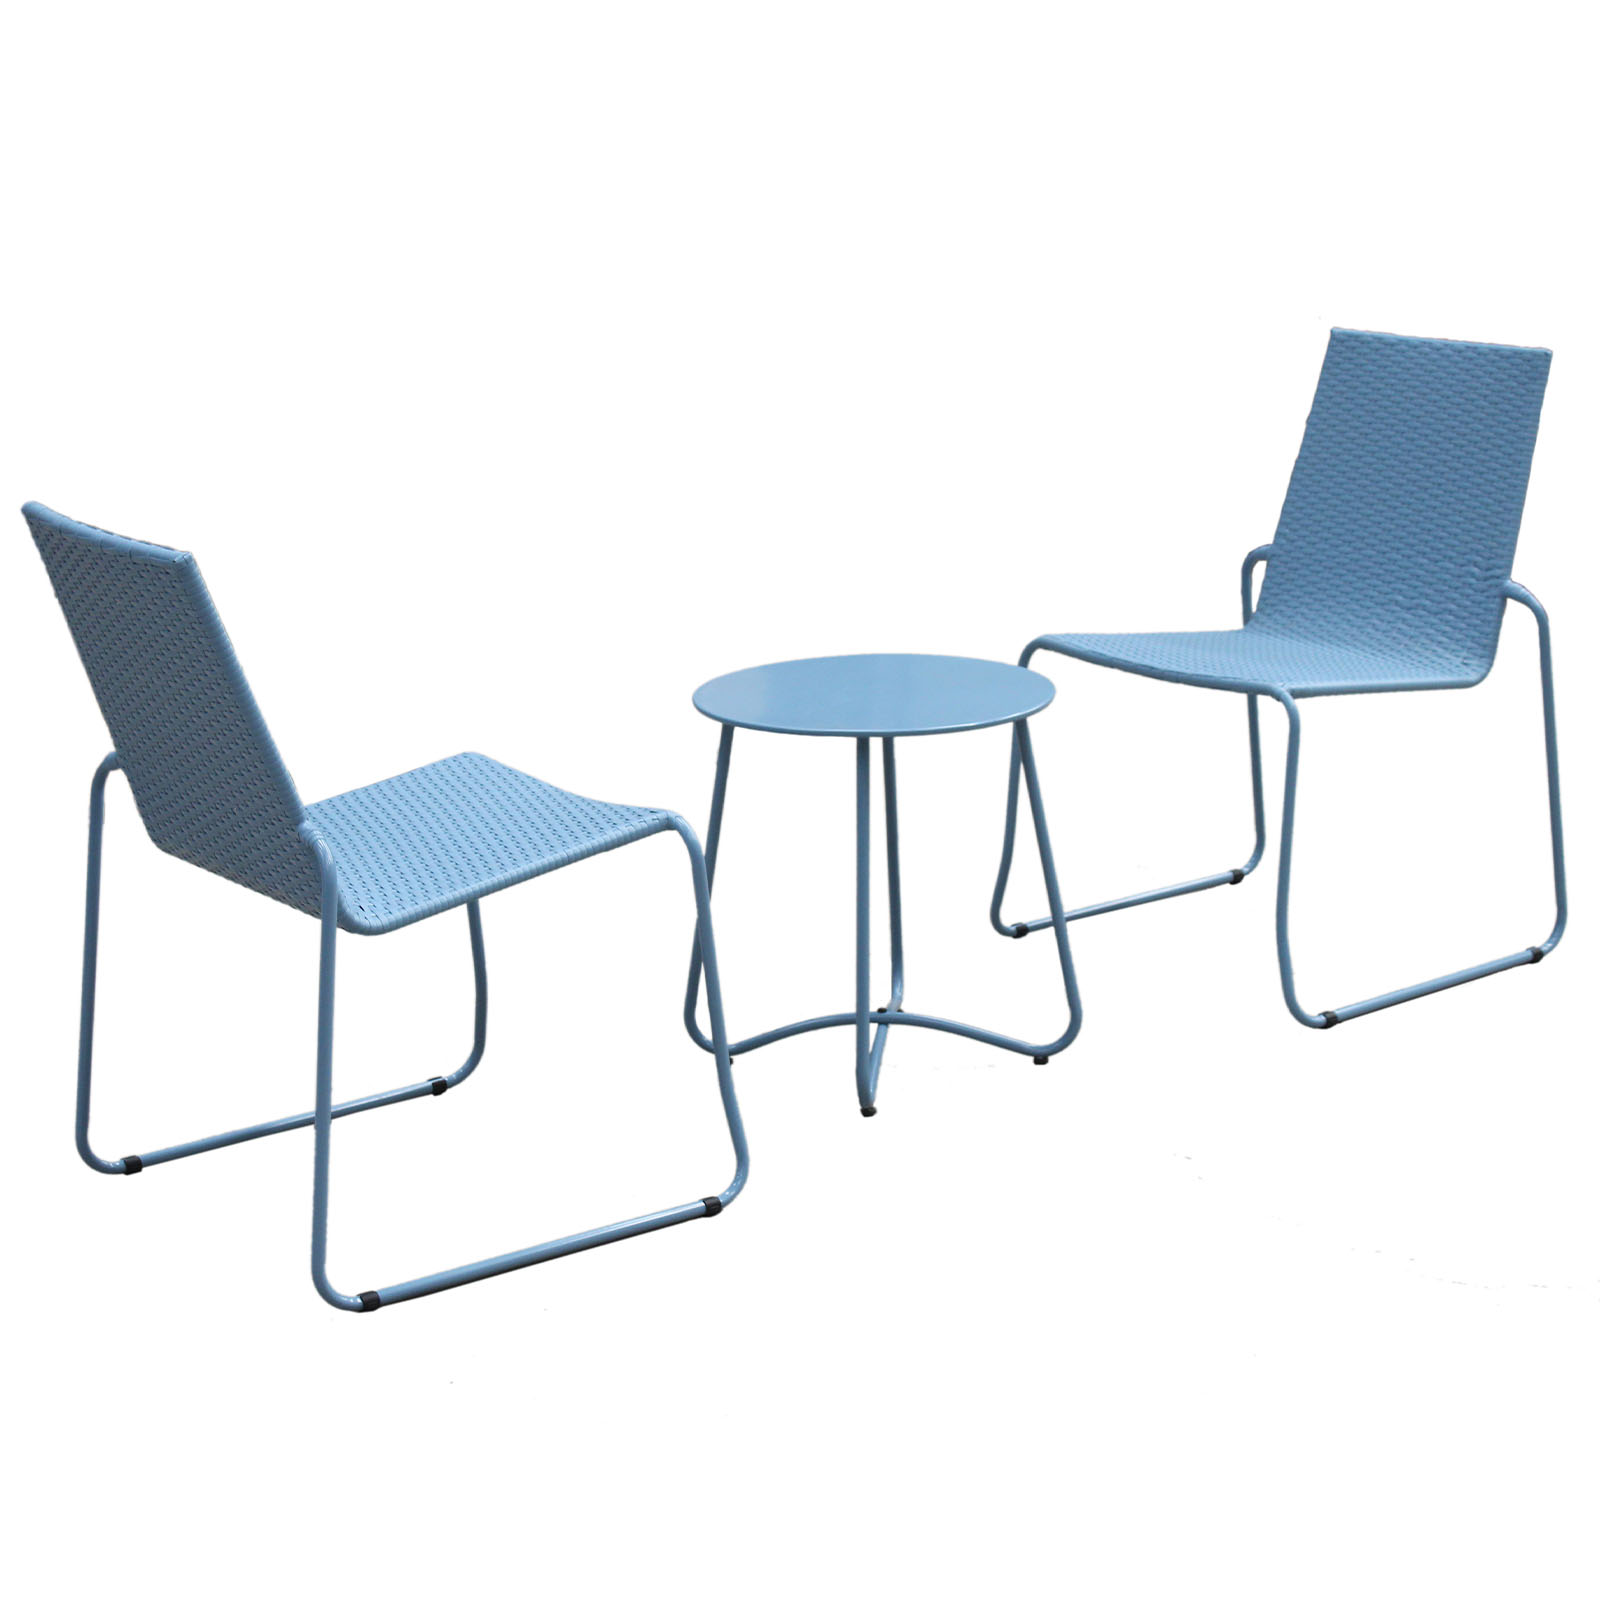 Milano-3pc-Outdoor-Furniture-Steel-Rattan-Coffee-Table-amp-Chairs-Patio-Garden-Set